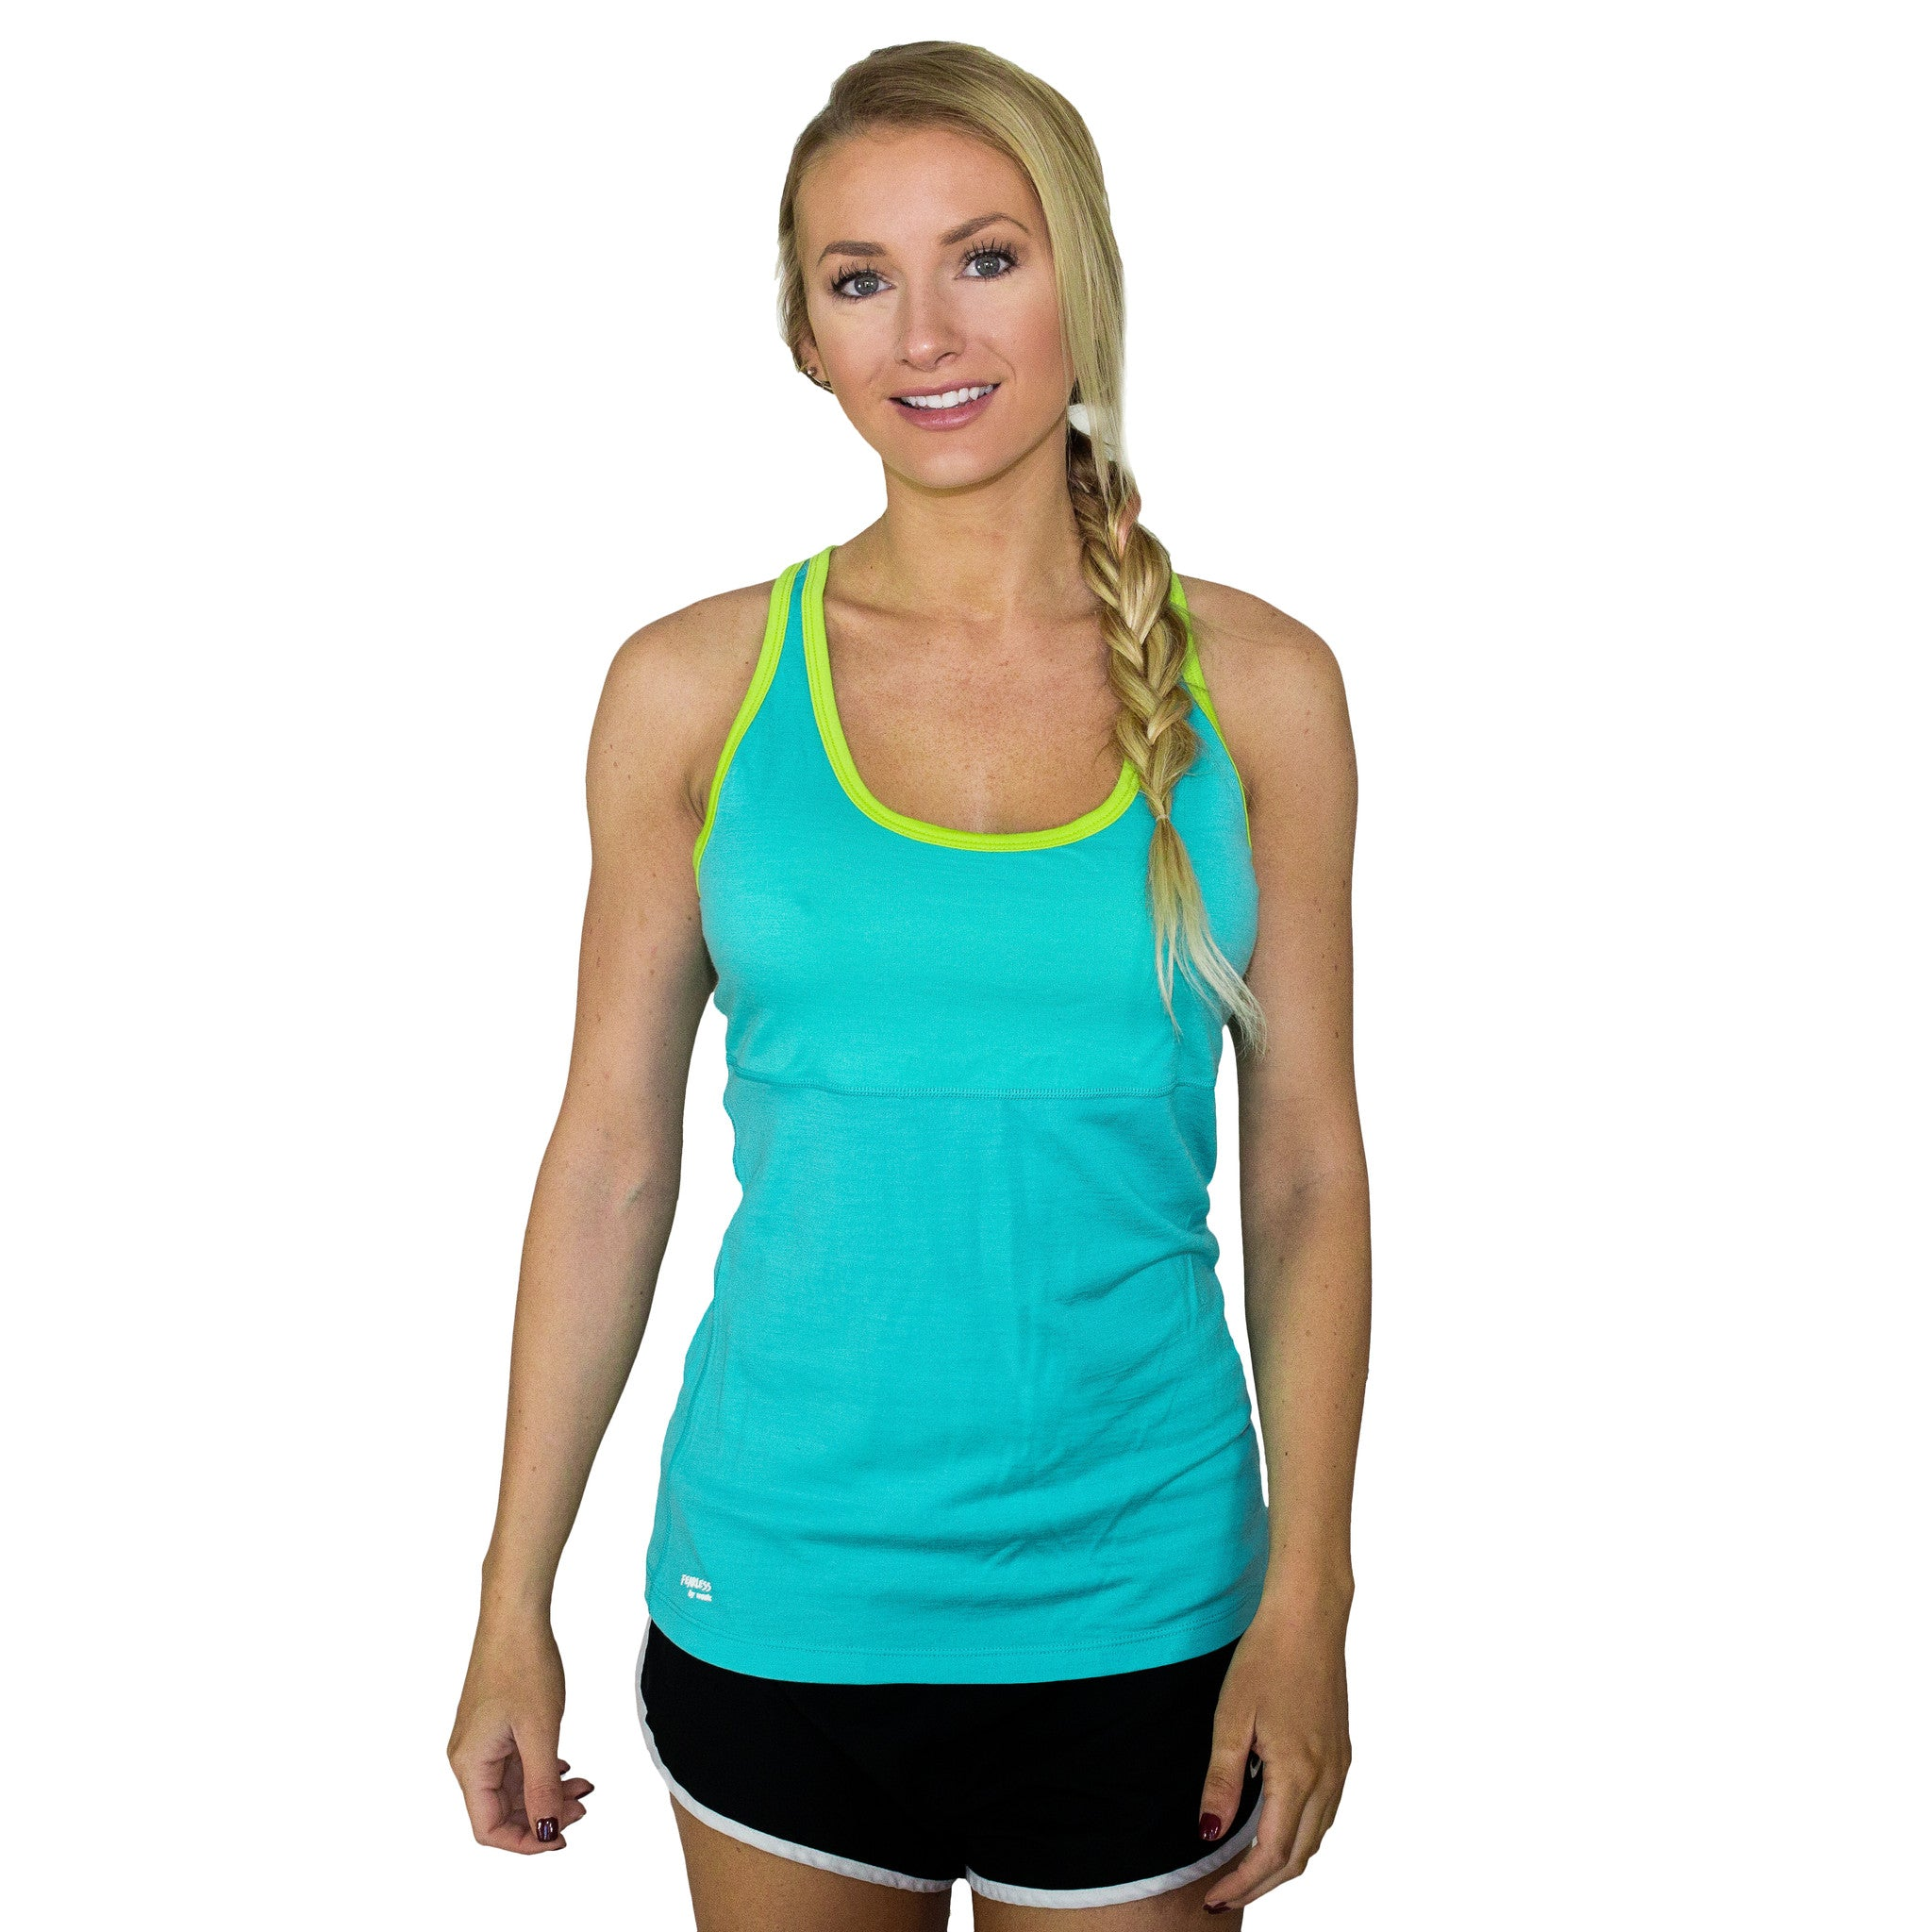 Shop workout tank tops for women from DICK'S Sporting Goods today. If you find a lower price on workout tank tops for women somewhere else, we'll match it with our Best Price Guarantee! Check out customer reviews on workout tank tops for women and save big on a variety of products. Plus, ScoreCard members earn points on every purchase.